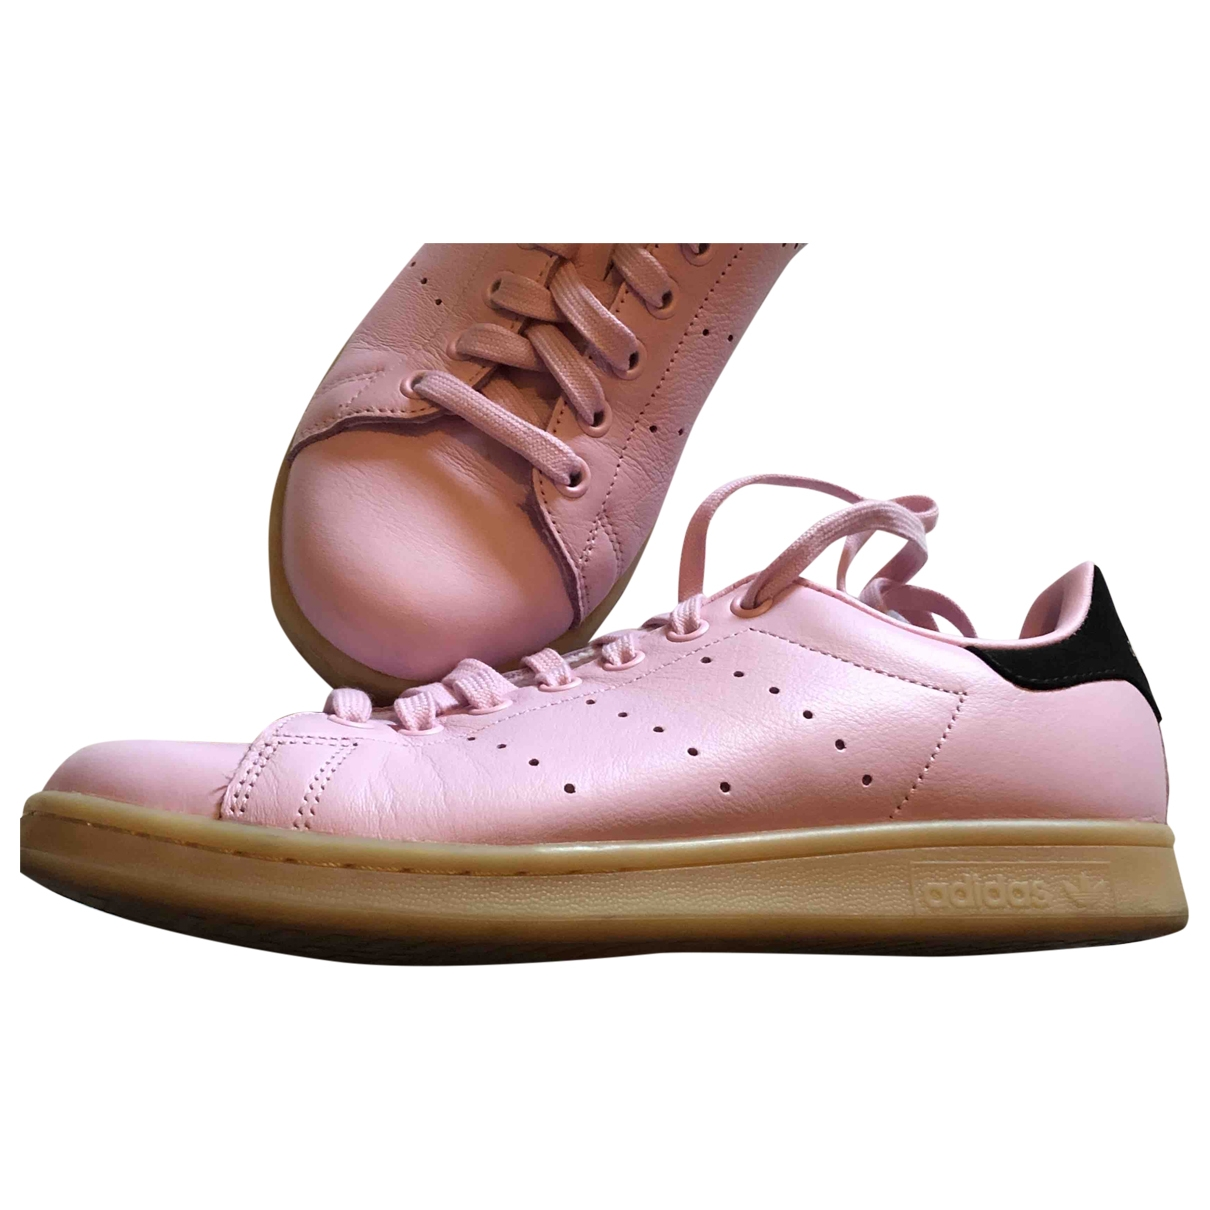 Adidas Stan Smith Pink Leather Trainers for Women 40 EU